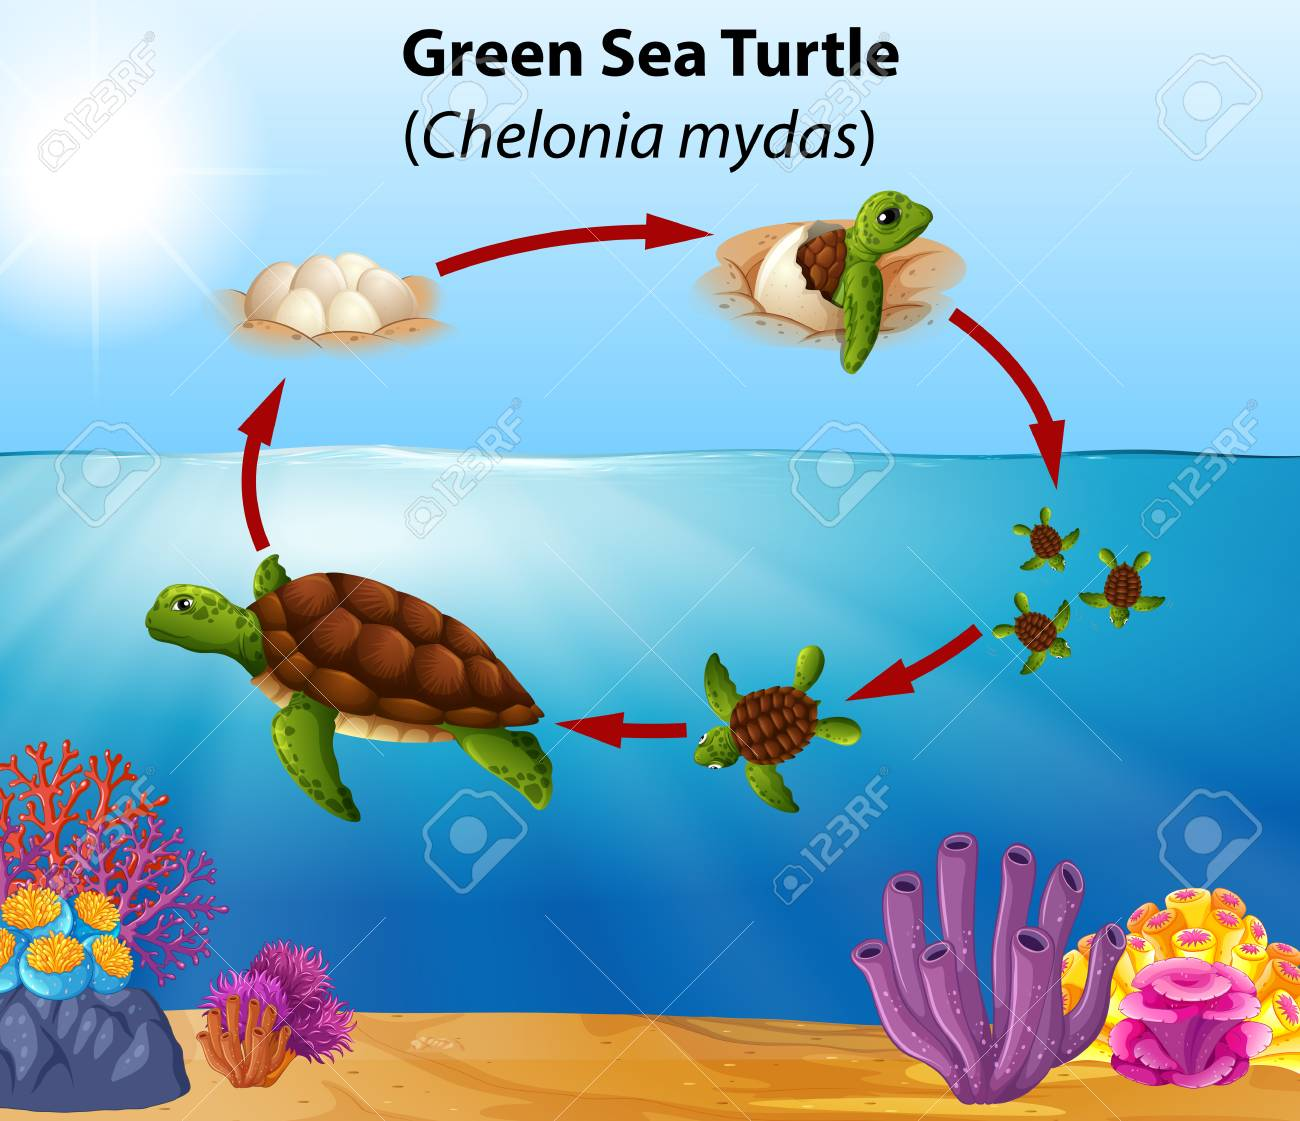 Green Sea Turtle Life Cycle Illustration Royalty Free Cliparts Vectors And Stock Illustration Image 113900984